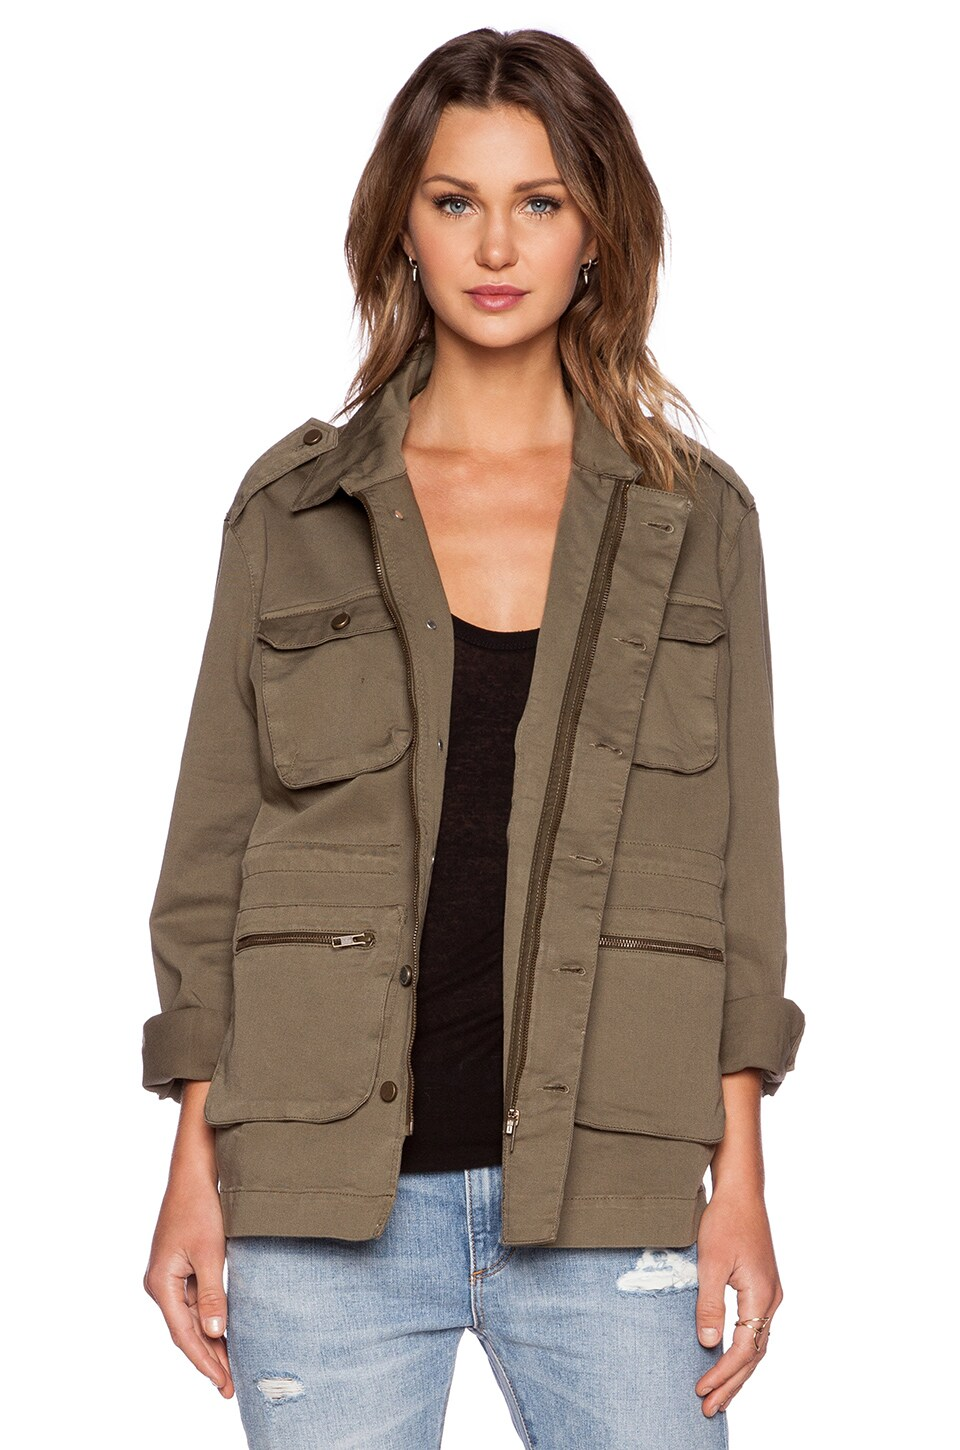 ANINE BING Oversized Army Jacket in Olive